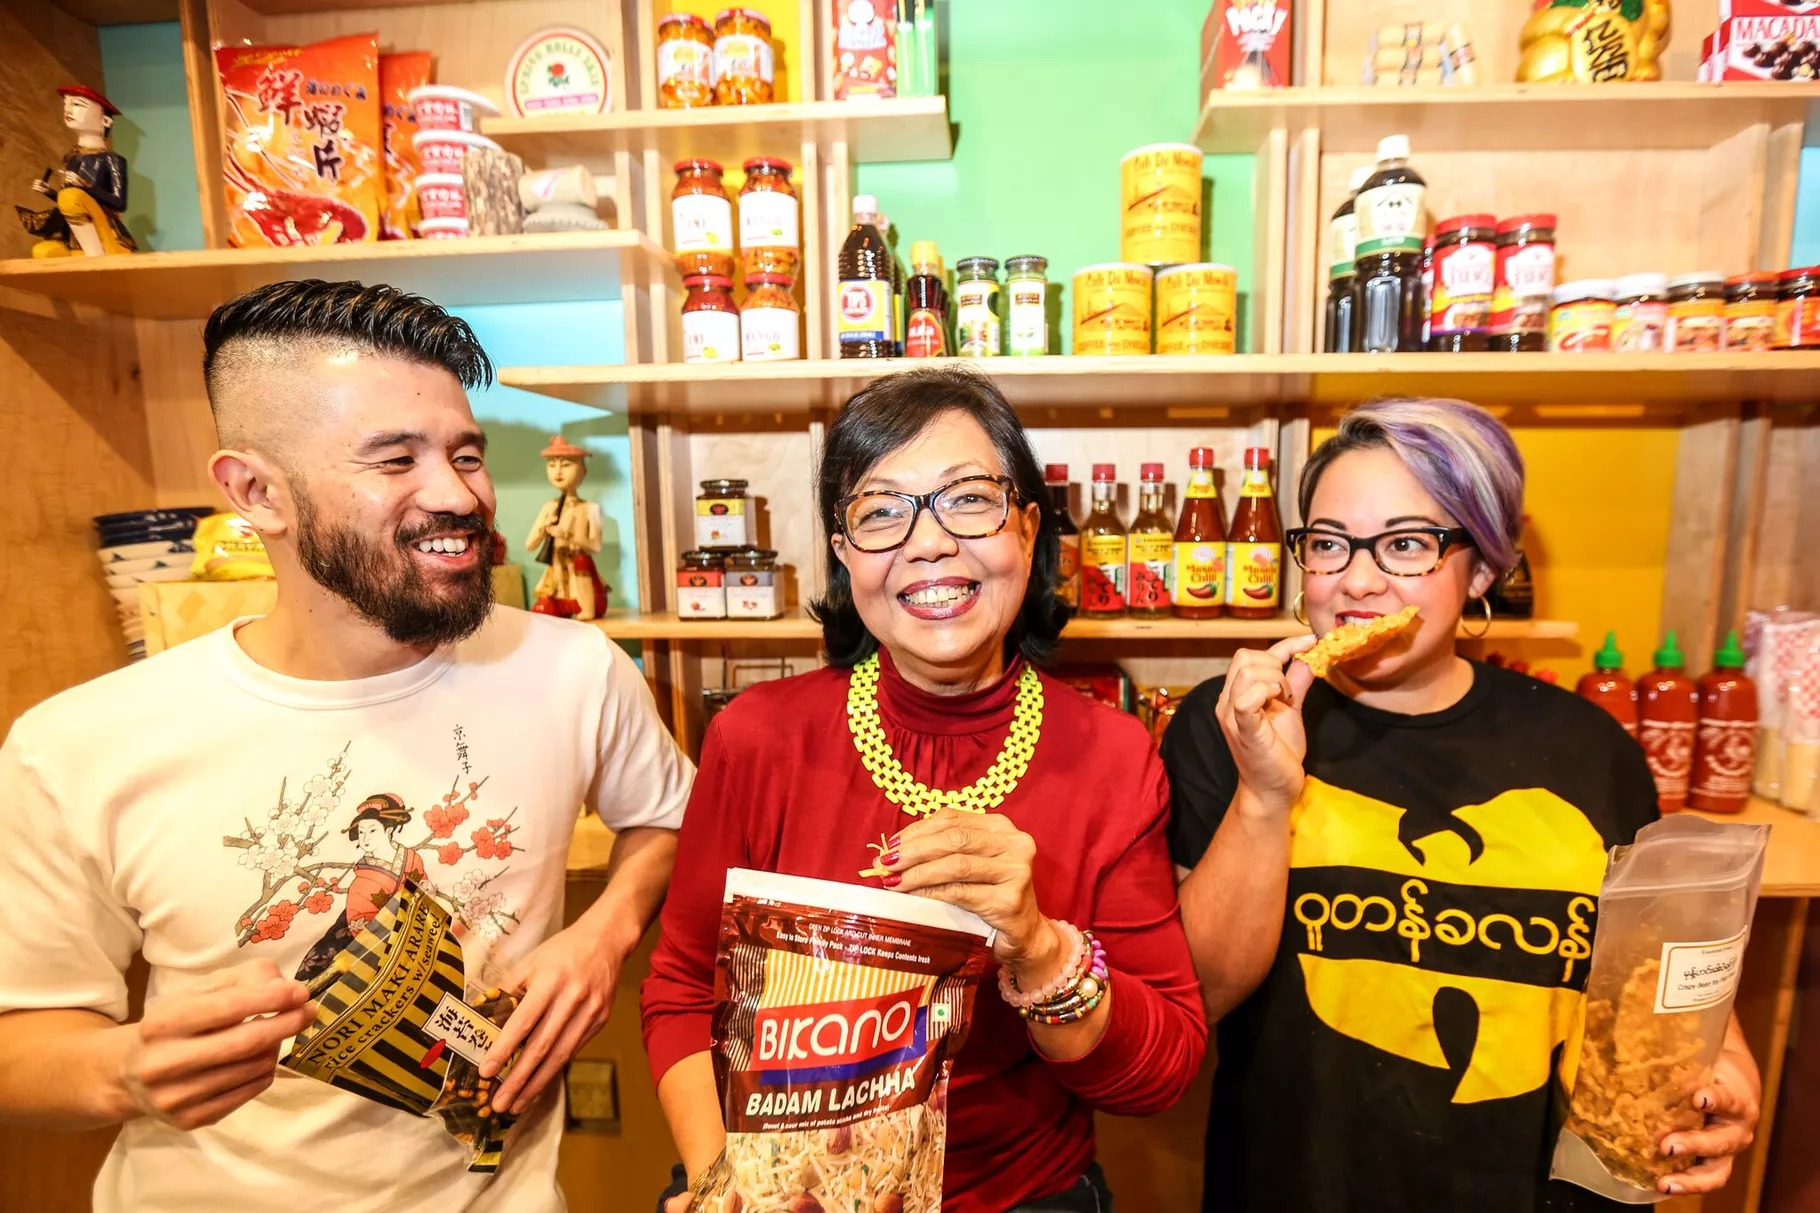 Toli Moli owners, from left, Eric Wang, Jocelyn Law-Yone, and Simone Jacobson hold snacks inside the Burmese bodega